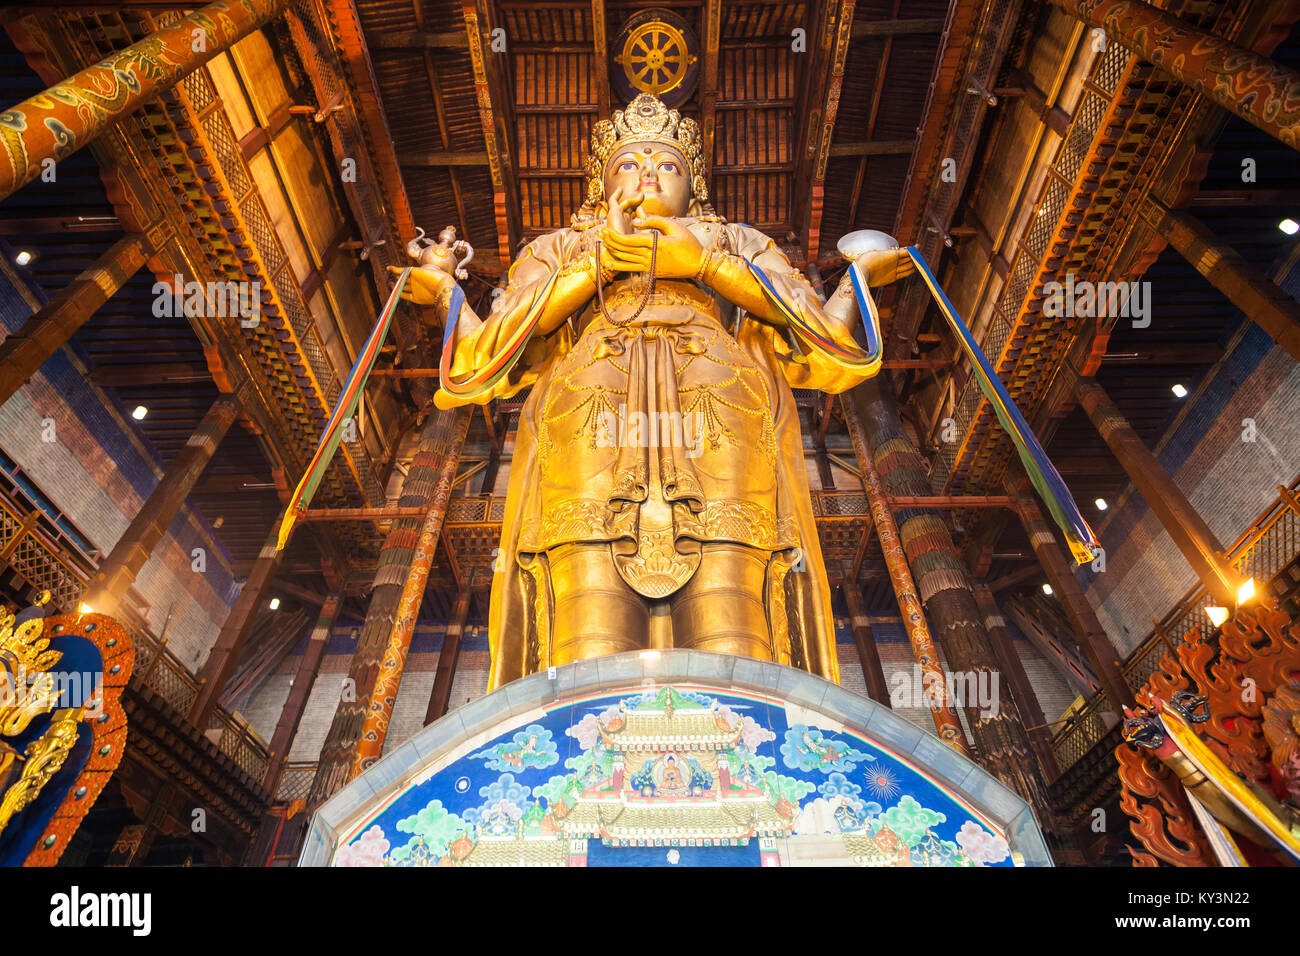 ULAANBAATAR, MONGOLIA - JULY 12, 2016: Avalokitesvara statue inside the Gandantegchinlen or Gandan Monastery. Its - Stock Image